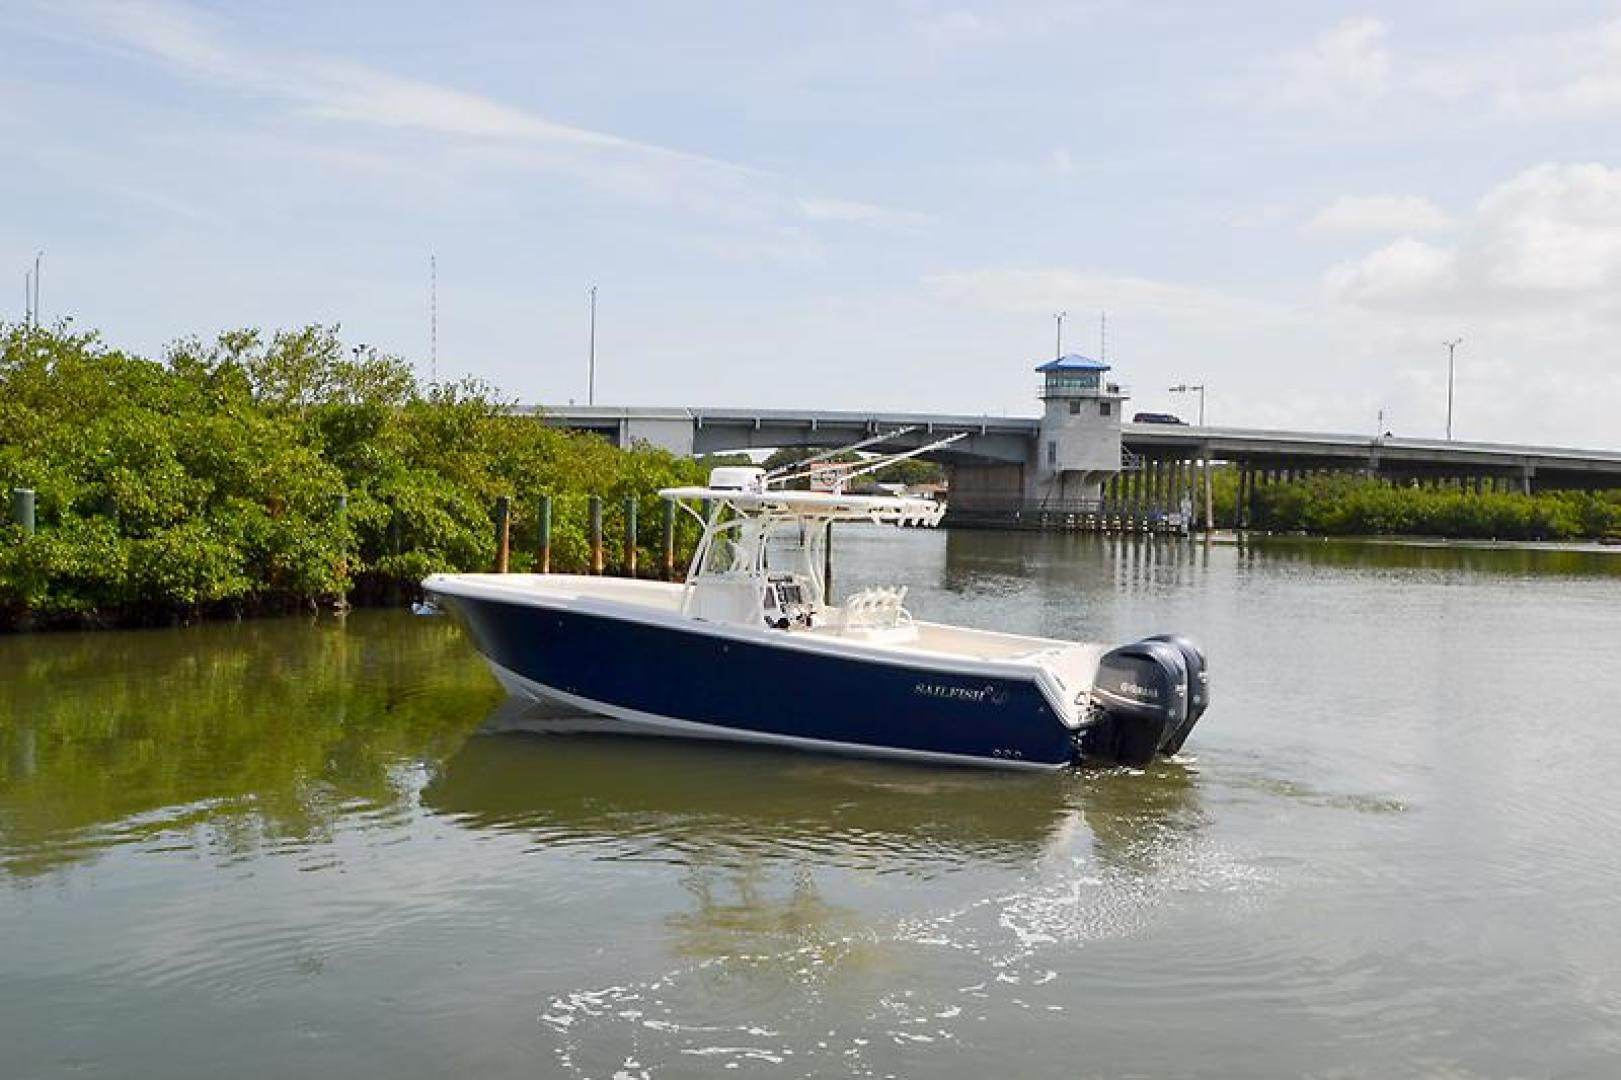 2014 Sailfish 320 cc-20.jpg